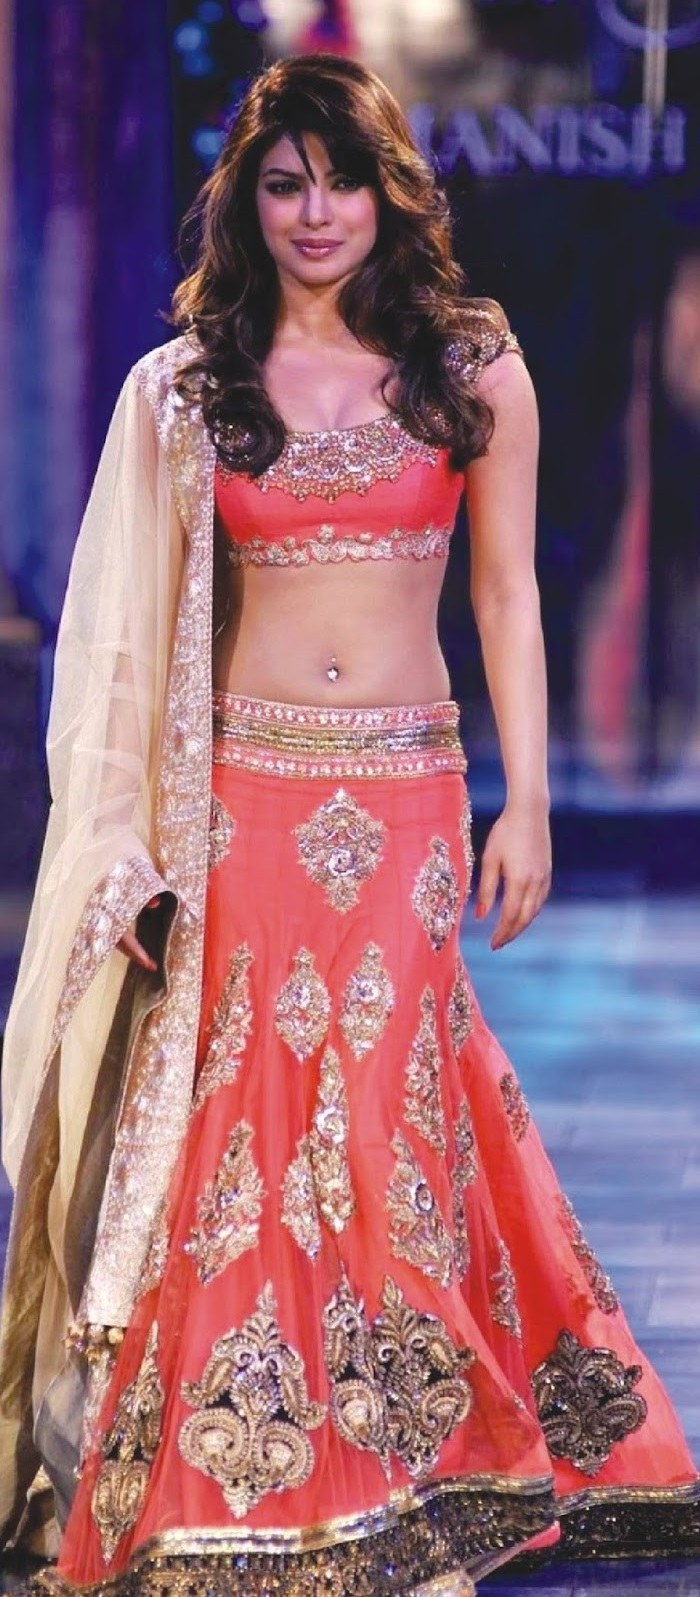 Bollywood Replica Priyanka Chopra In Designer Bridal Red Lehenga